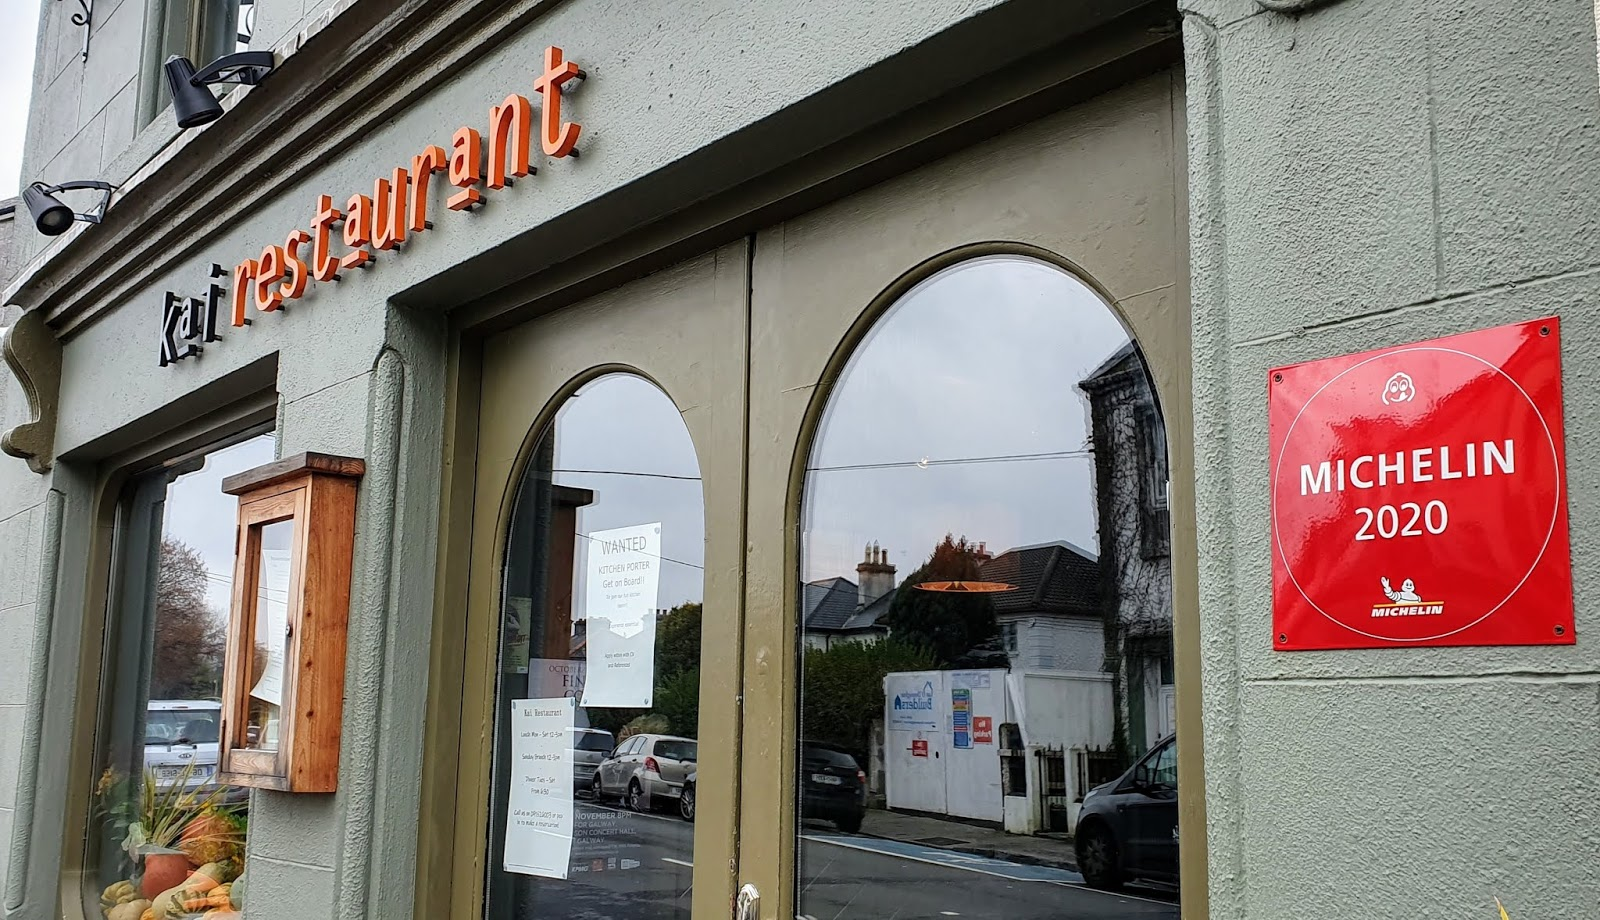 Galway restaurant front door, with Michellin 2020 award prominently displayed